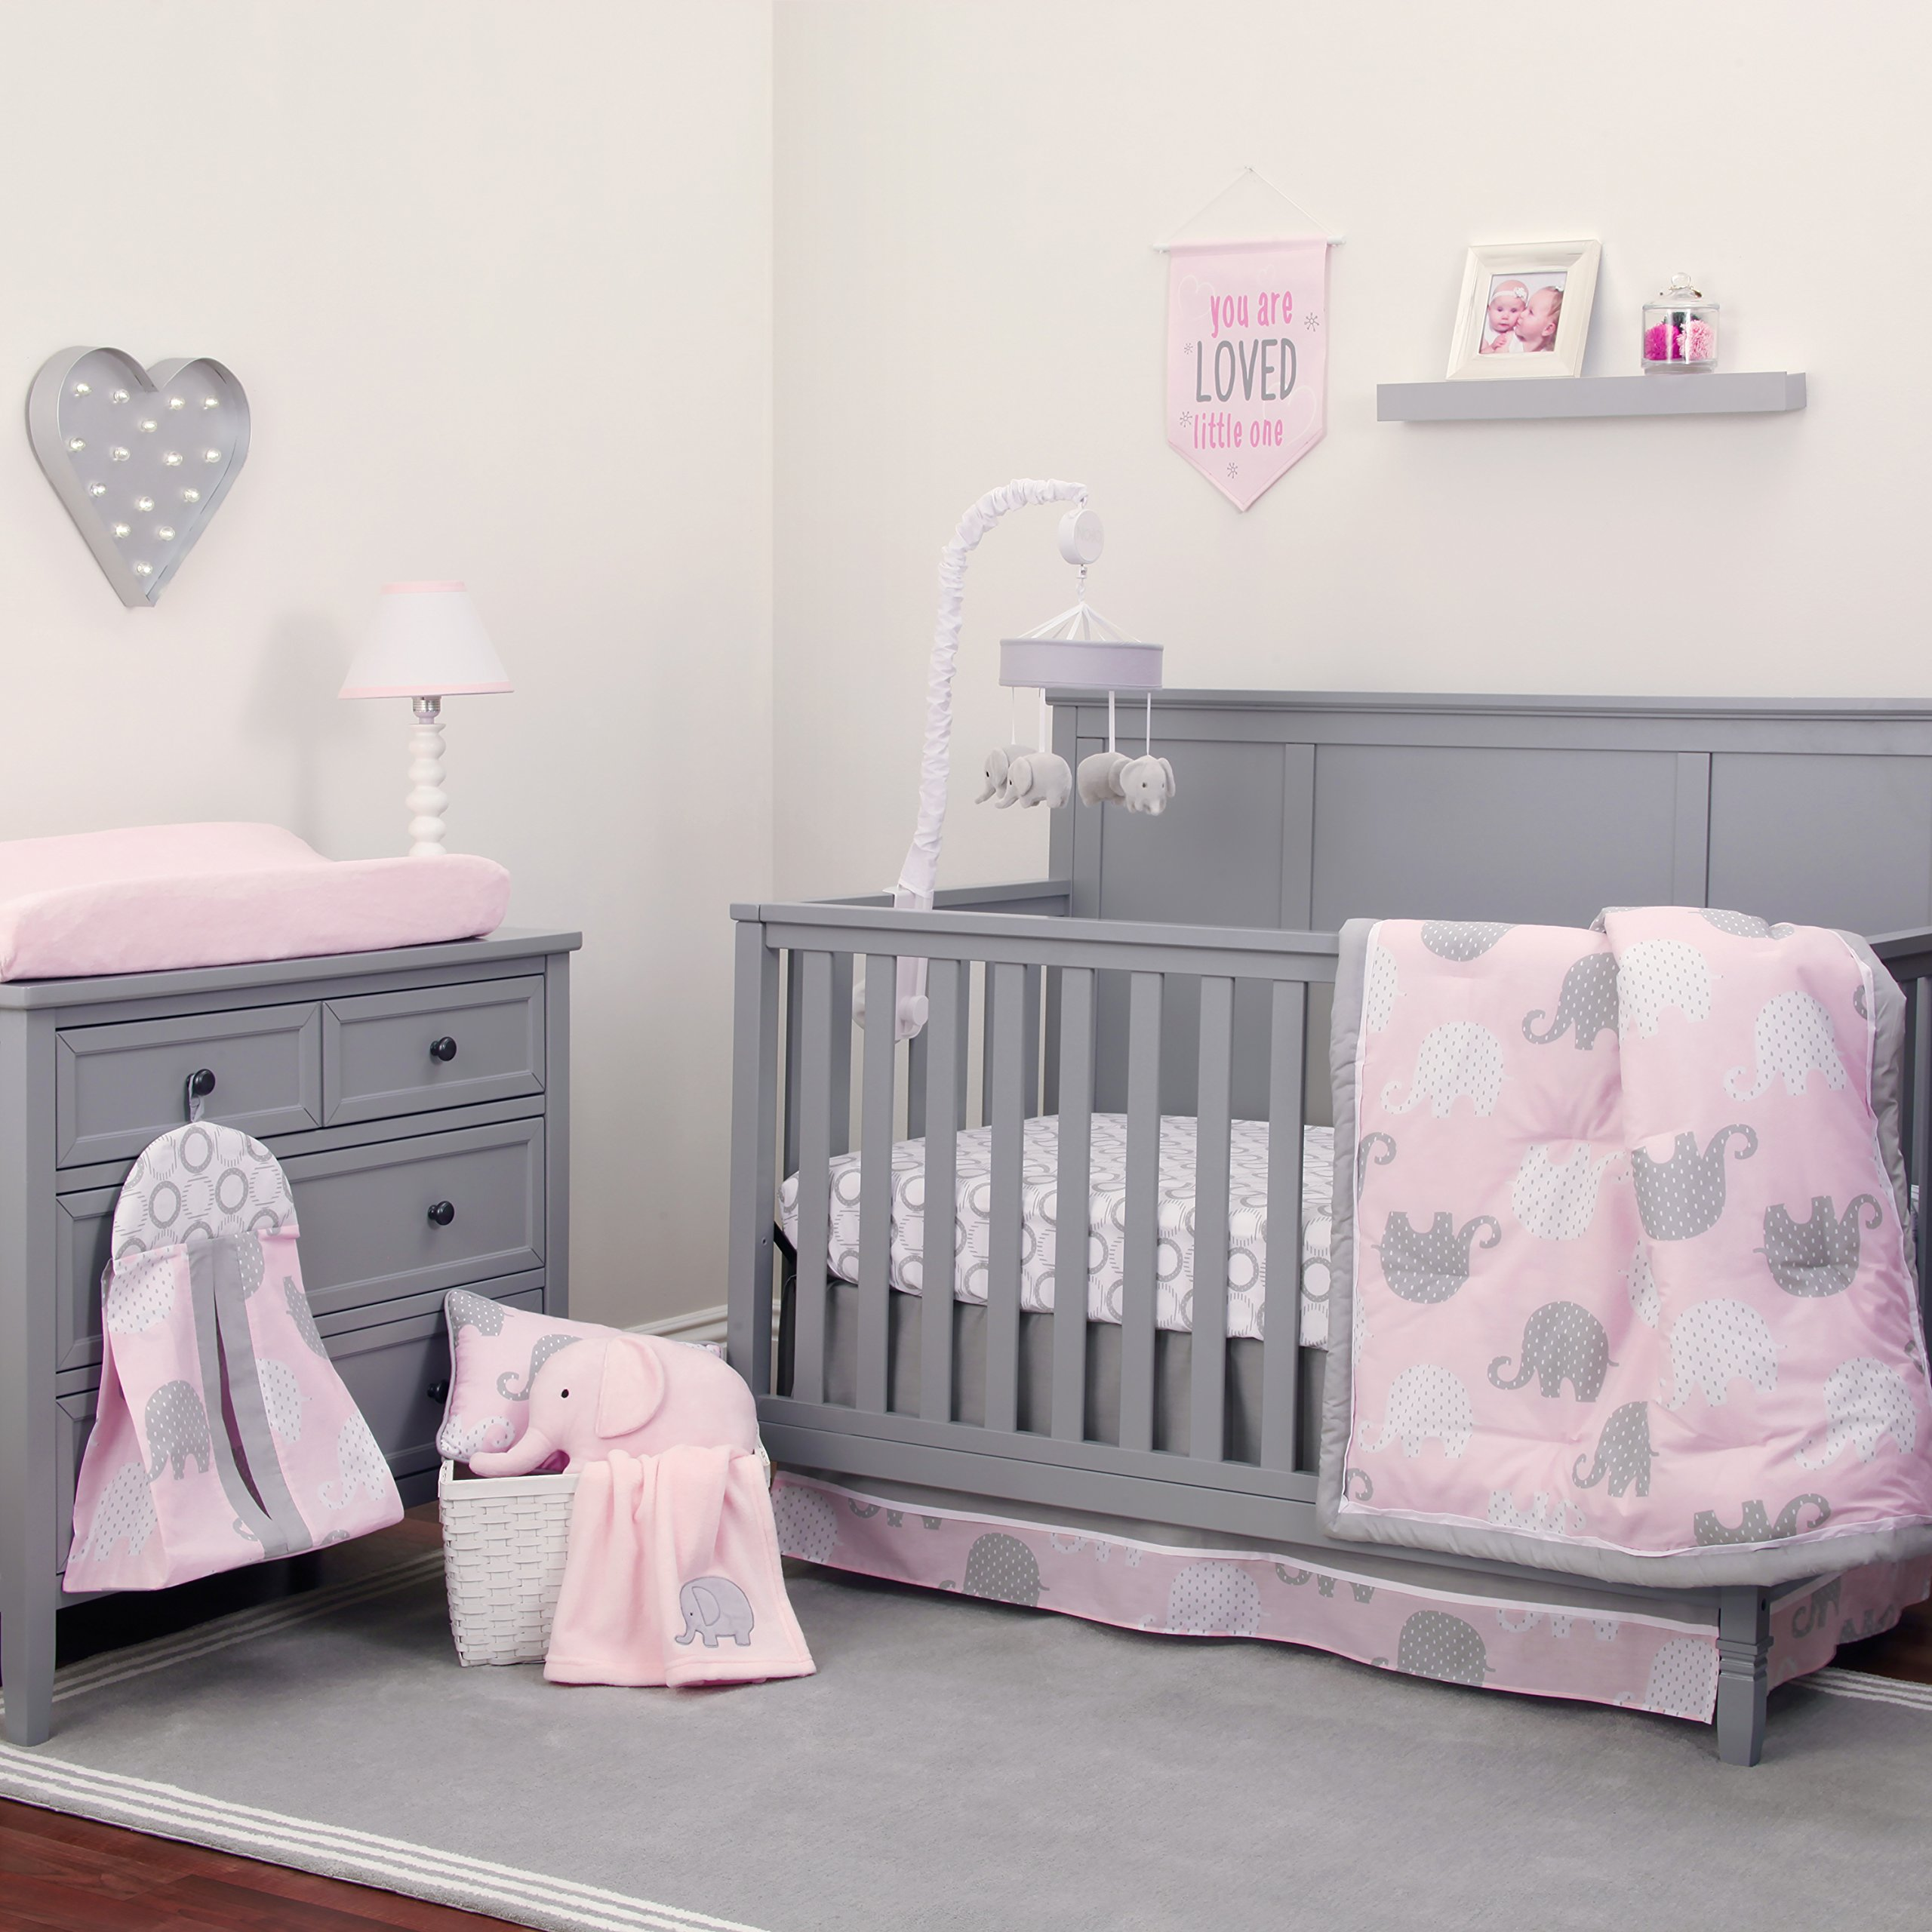 crib bed bedding ter sets nursery boy girl grey how white size start pink bag comforter linen sheet full baby to staggering twin quilts ddler learn cot of star and bumper plain set accessories owl sheets ters a brands bedroom blue quilt